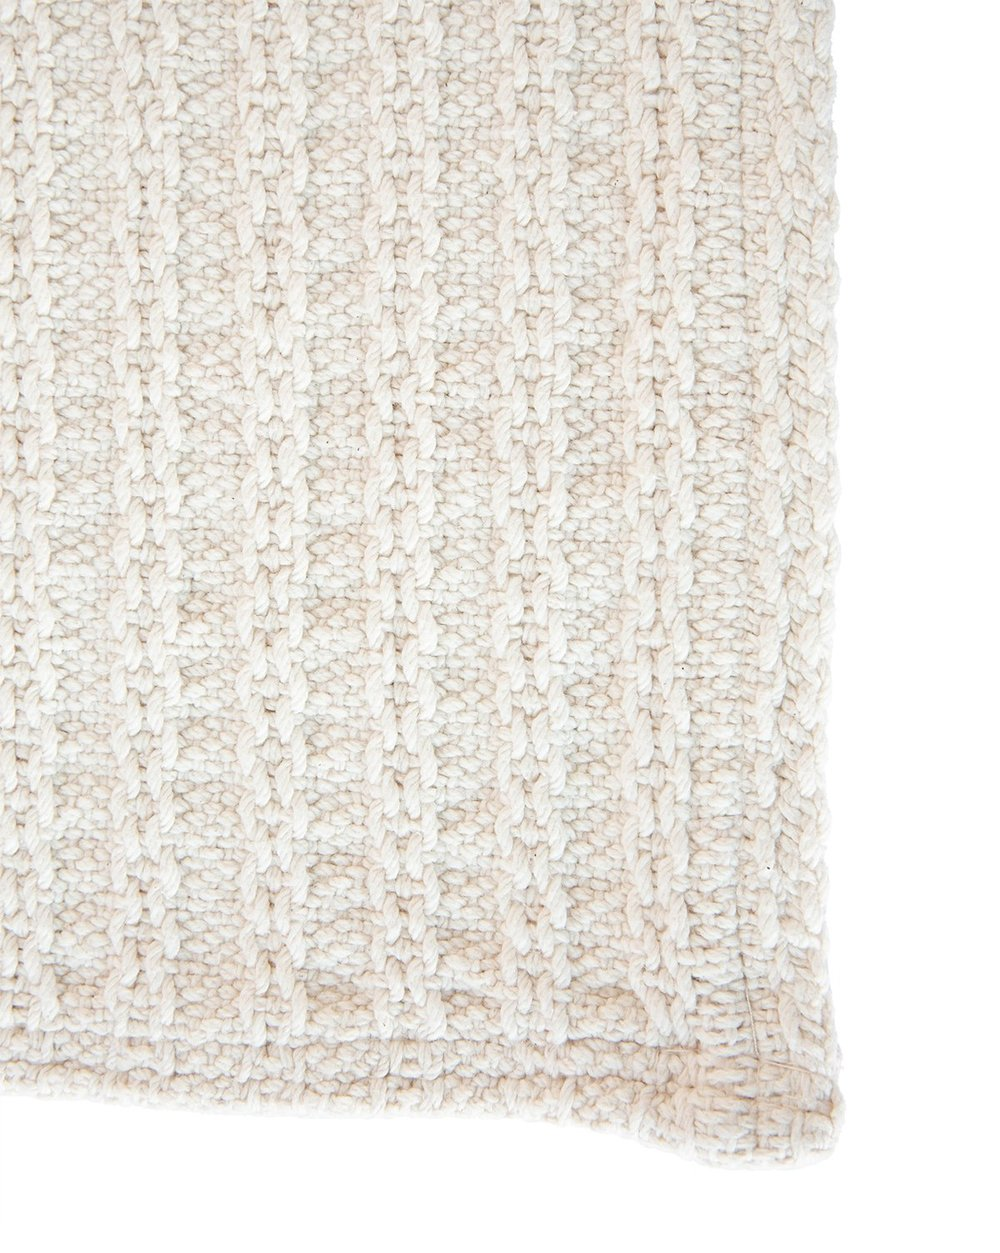 Cable-Knit_Blanket_4.jpg